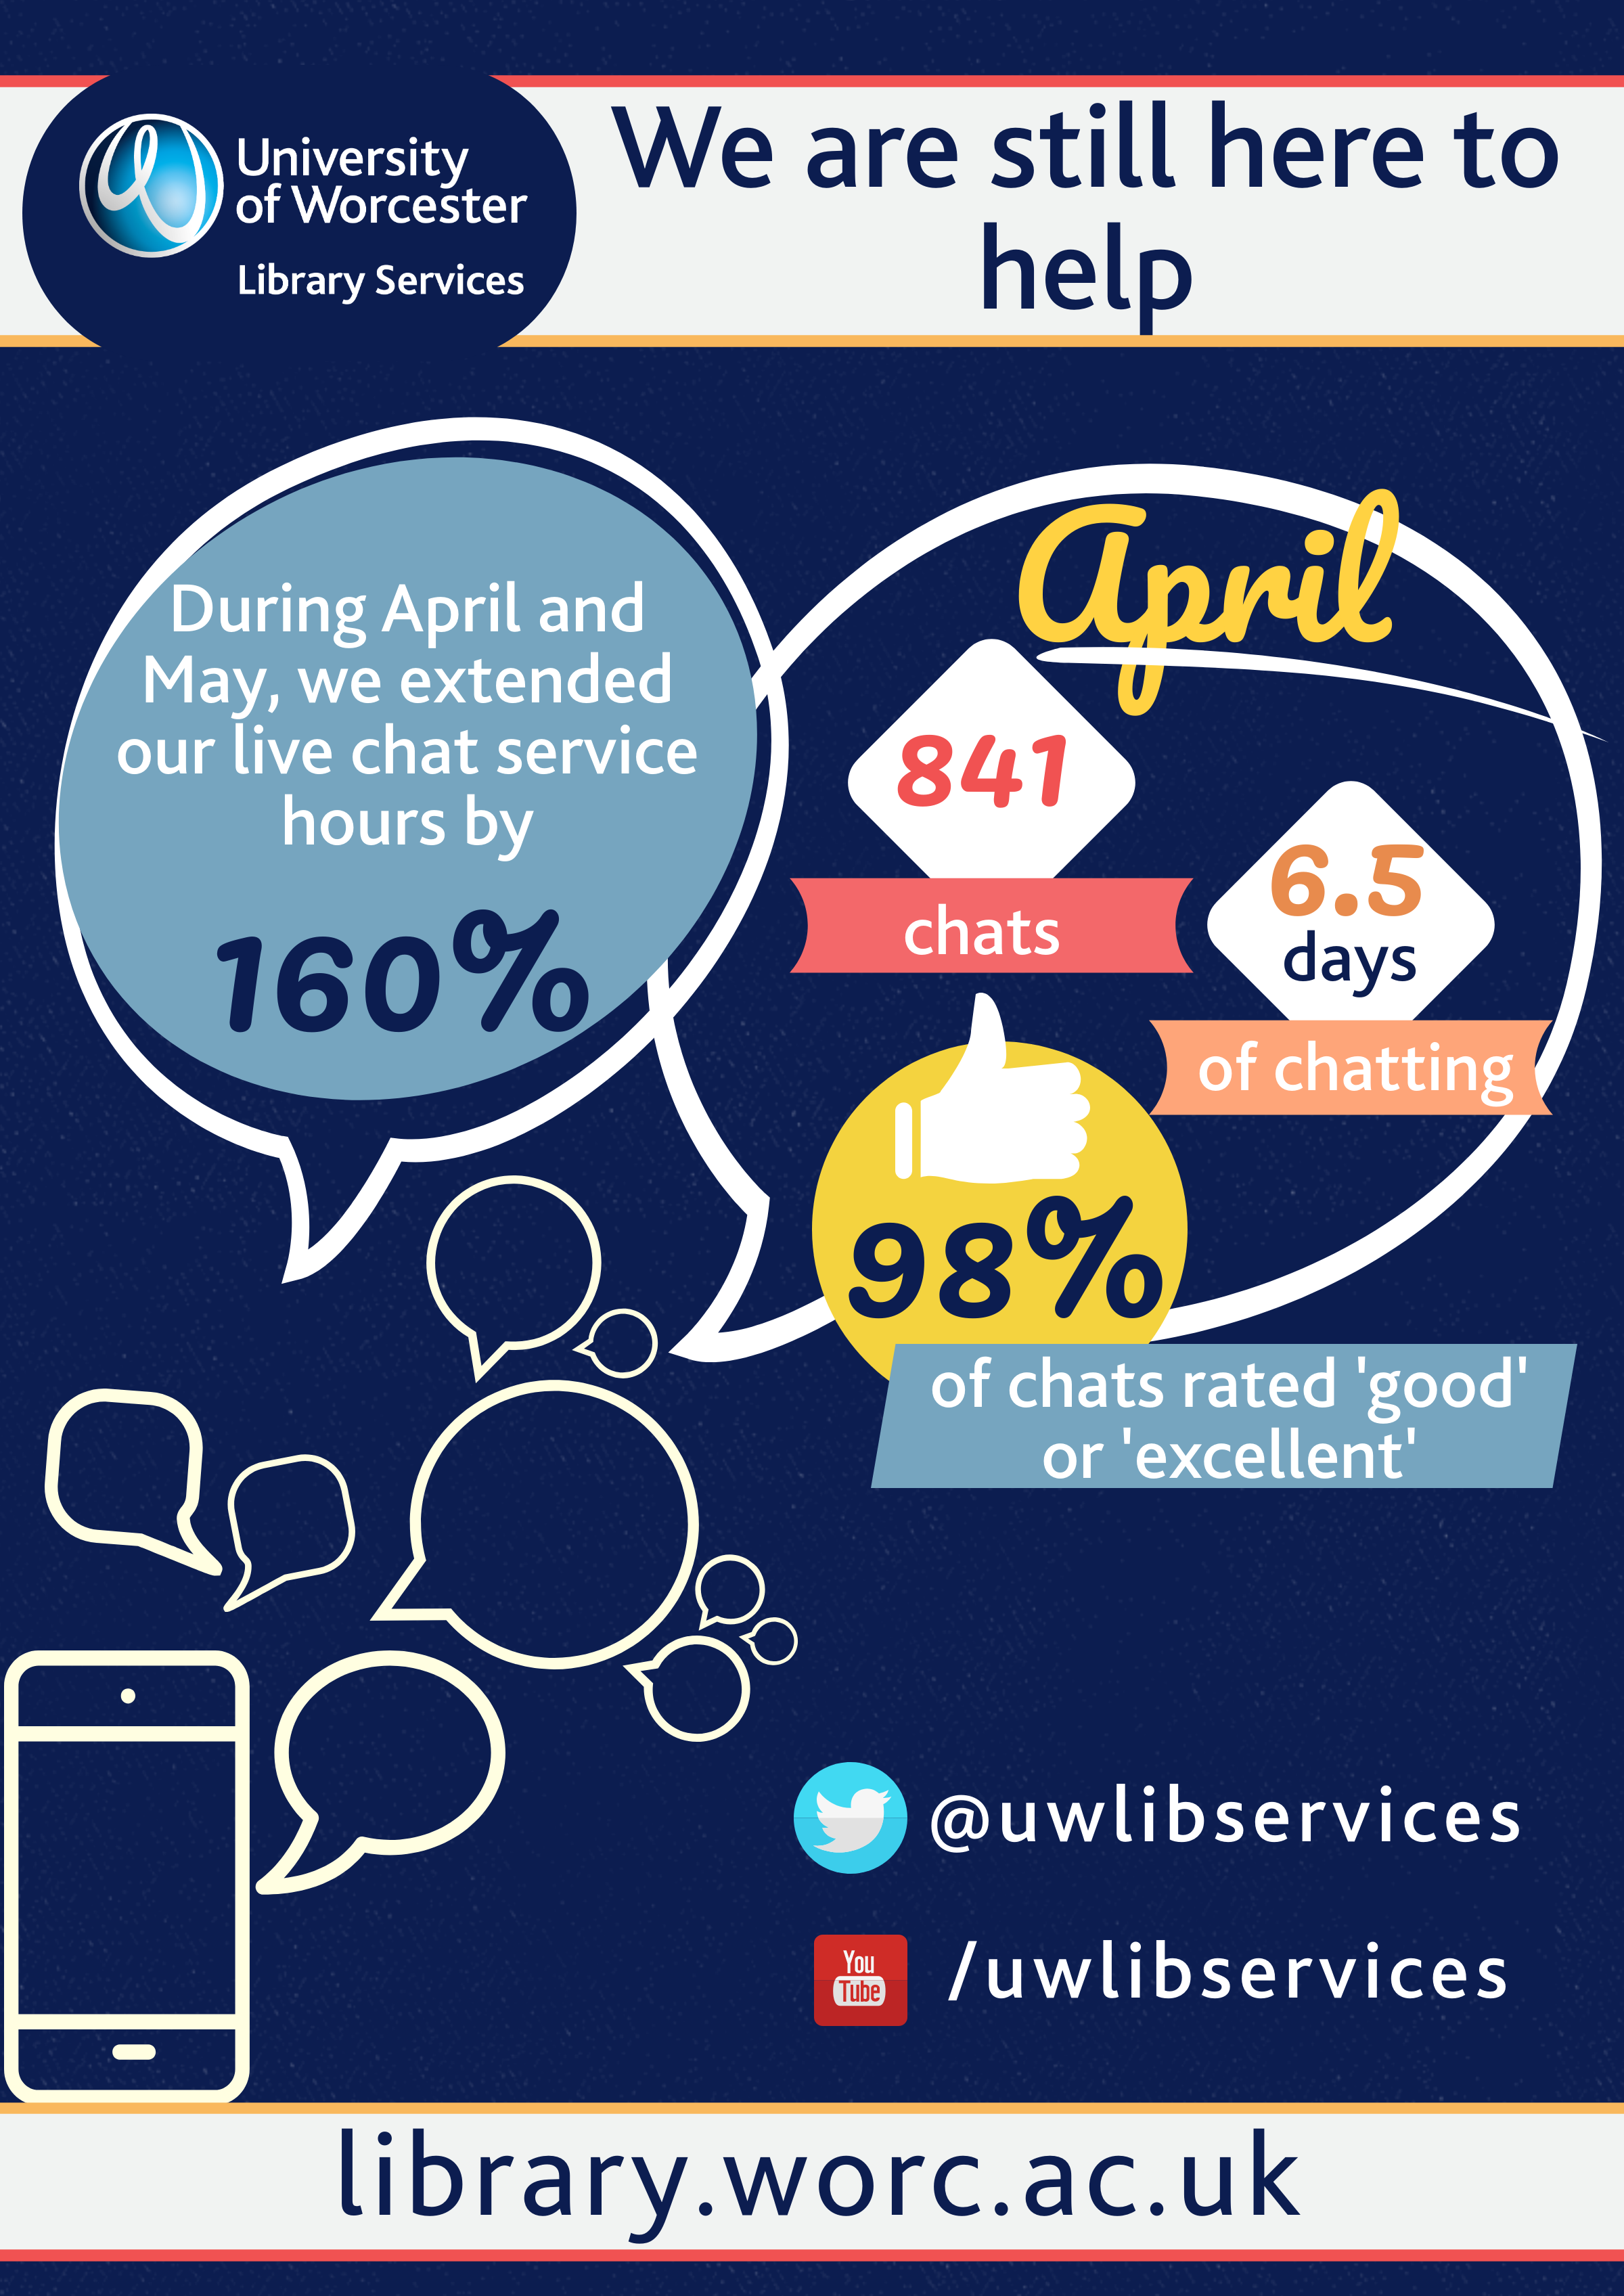 During April and May we extended our live chat service hours by 160%. In April we answered 841 chats, which is 6.5 full days of chatting. 98% of chats were rated good our excellent